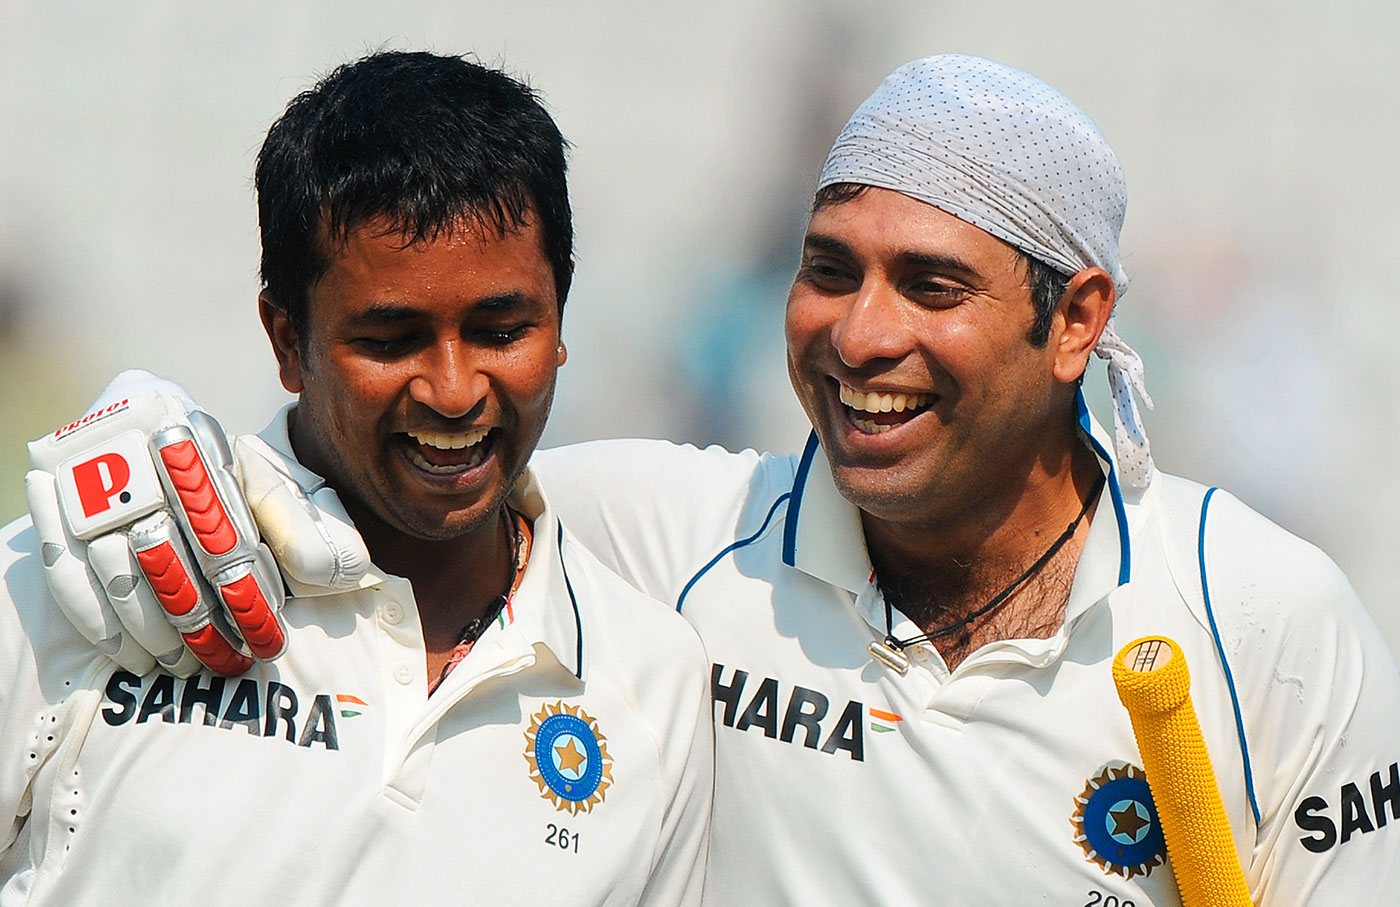 VVS Laxman and Pragyan Ojha celebrate the closest of victories, 1st Test, Mohali, India v Australia, 5th day, October 5, 2010